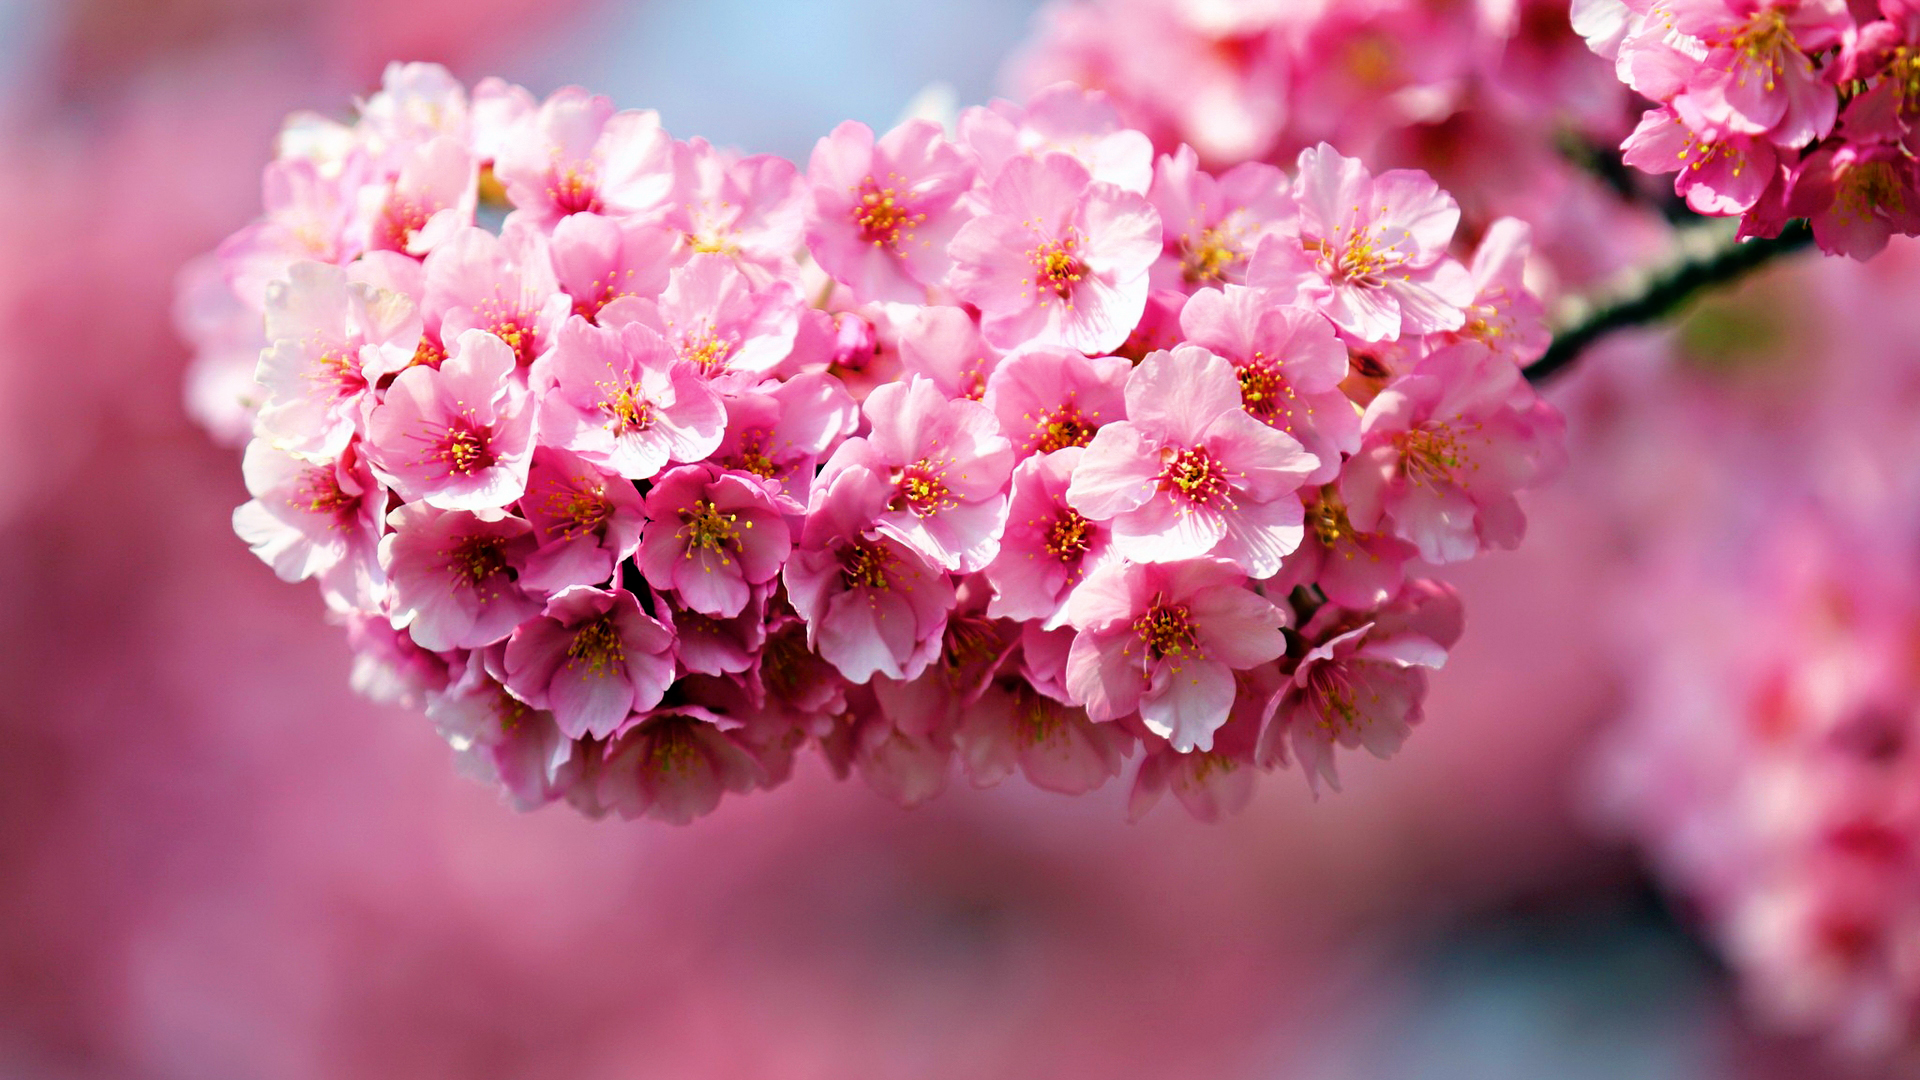 """Download the following Pink Flowers Wallpaper 862 by clicking the button positioned underneath the """"Download Wallpaper"""" section."""